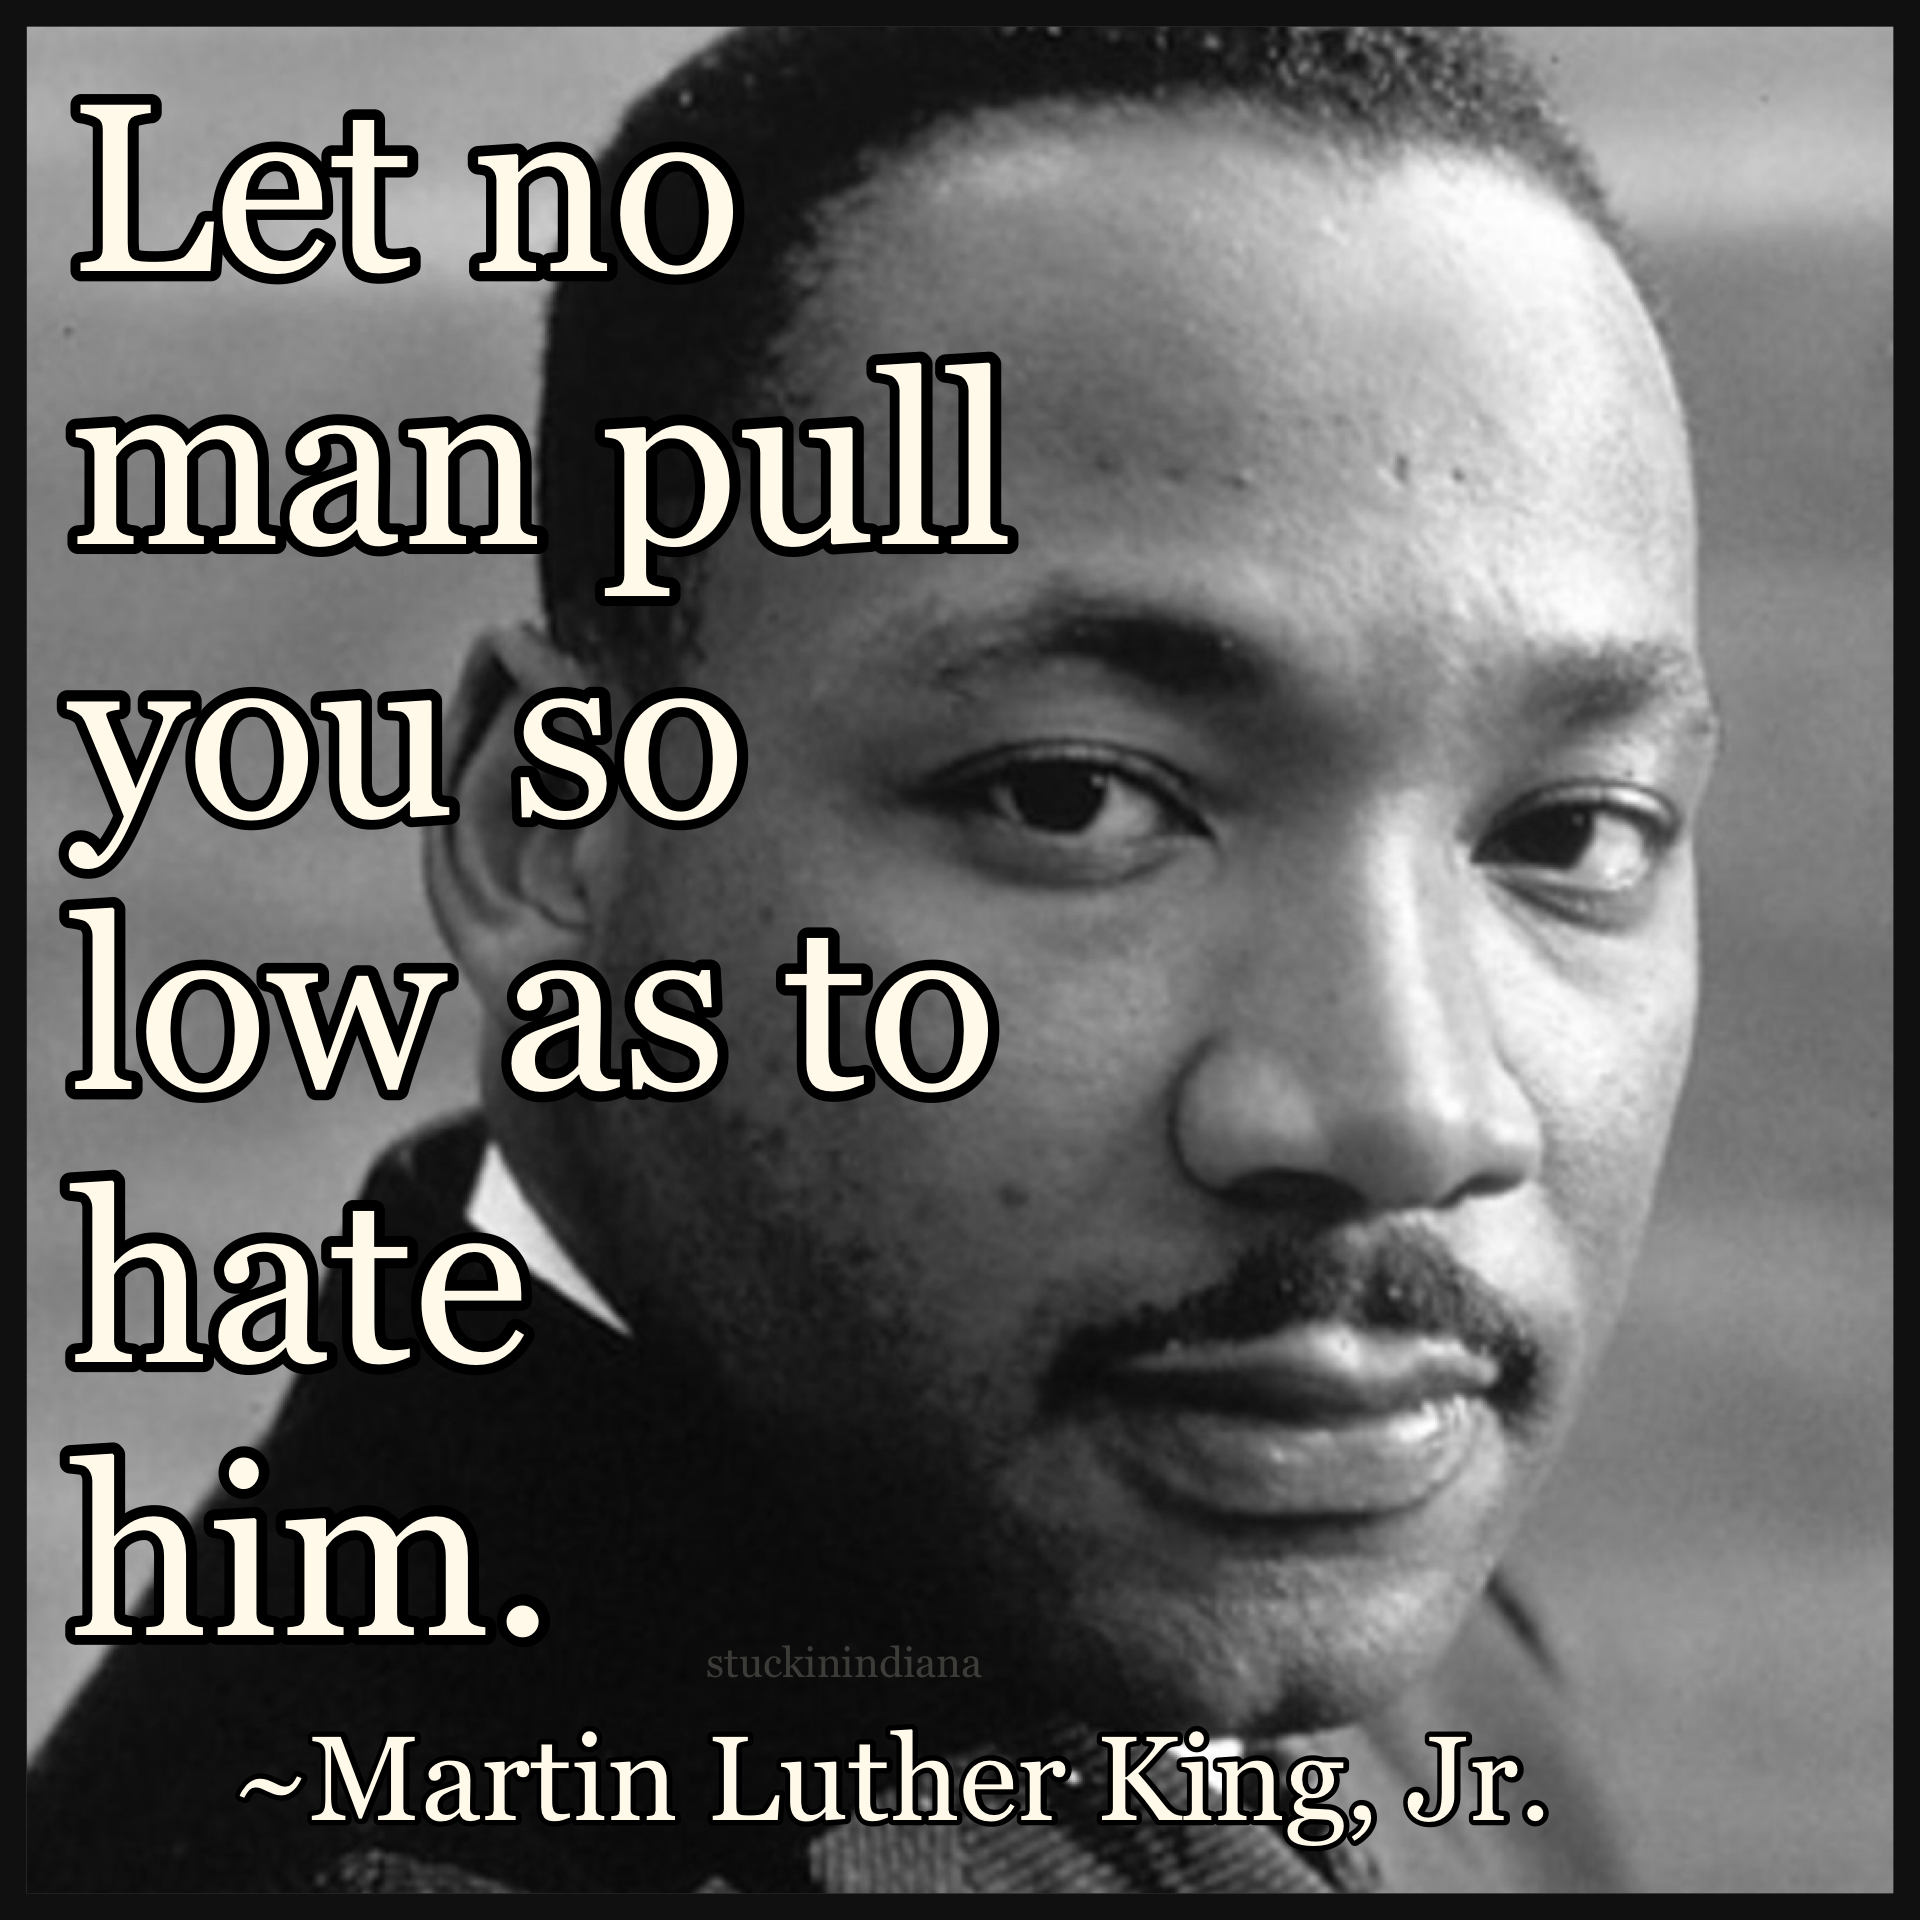 Pin on Martin Luther King, Jr. quotes